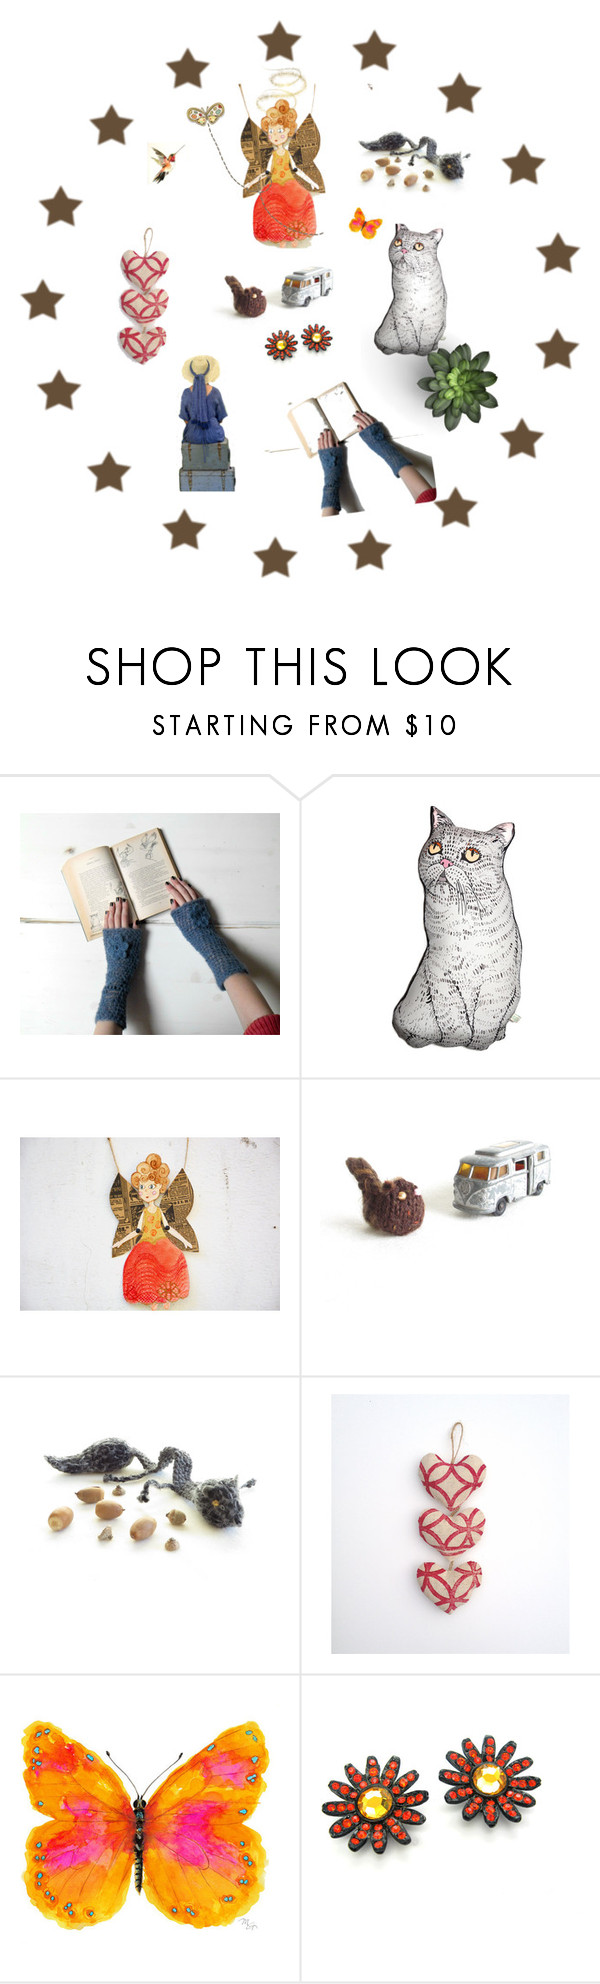 """""""Circle of magic"""" by laughingdog ❤ liked on Polyvore featuring interior, interiors, interior design, home, home decor, interior decorating, Silken Favours and WALL"""